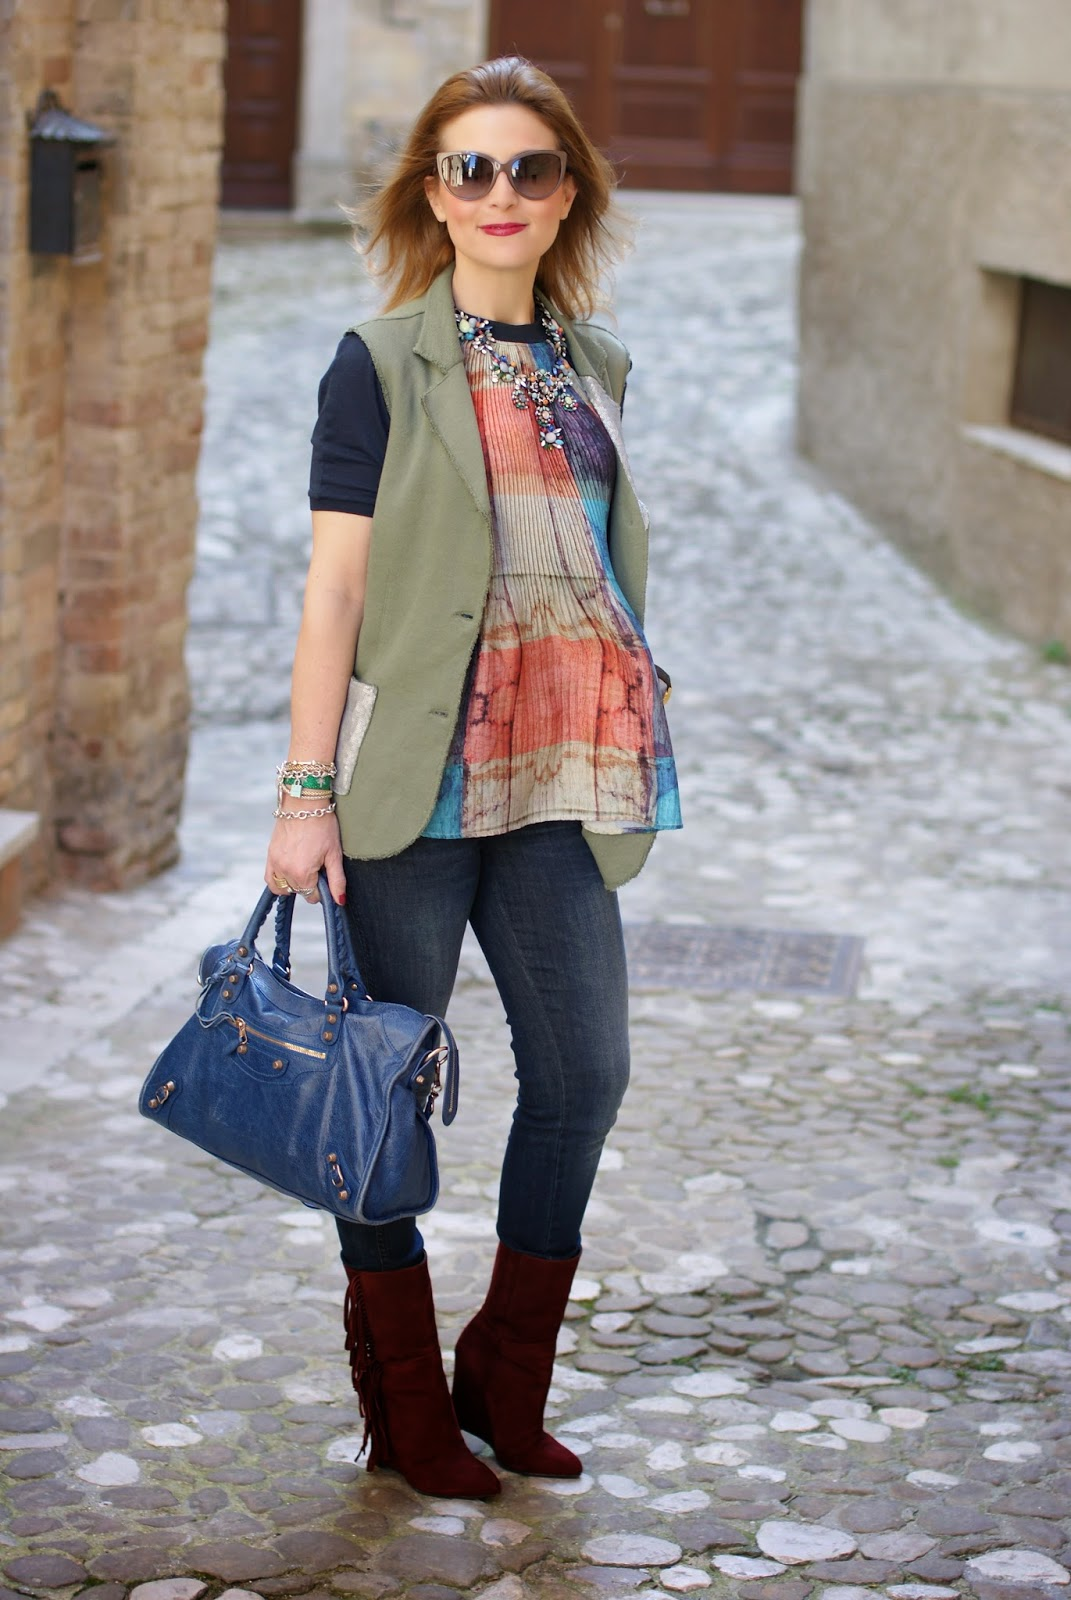 Praio sleeveless jacket, Zara pleated top, Balenciaga City blue, Fashion and Cookies, fashion blogger